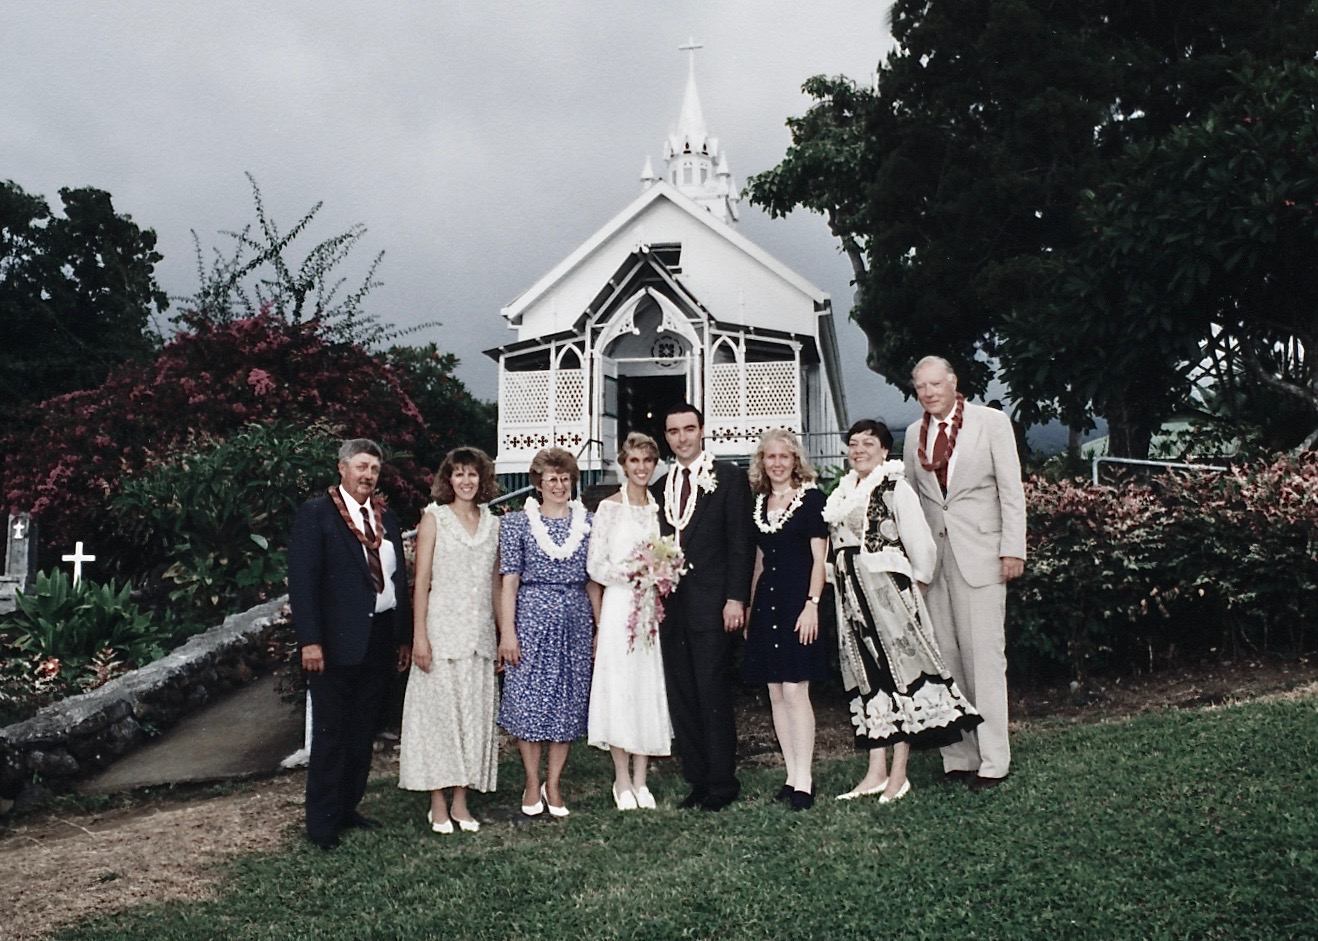 Our wedding party. with Julie's older sister (Lynda), father (Harold), mother (Judy), Julie and me, Julie's younger sister (Beth), and my folks, 1994.